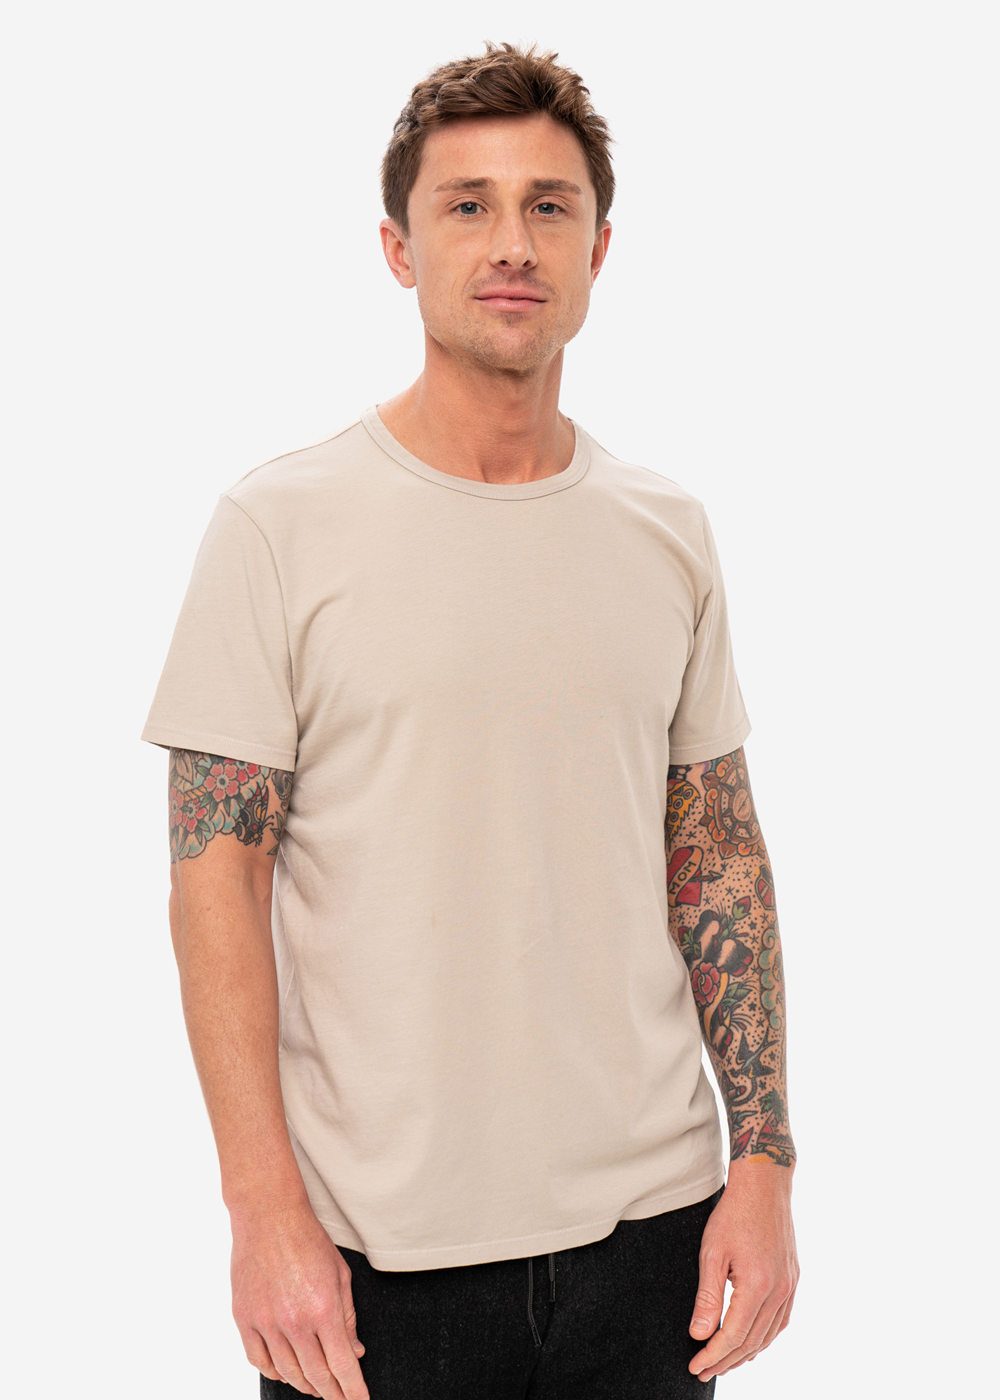 The Everyday T-Shirt - Sand